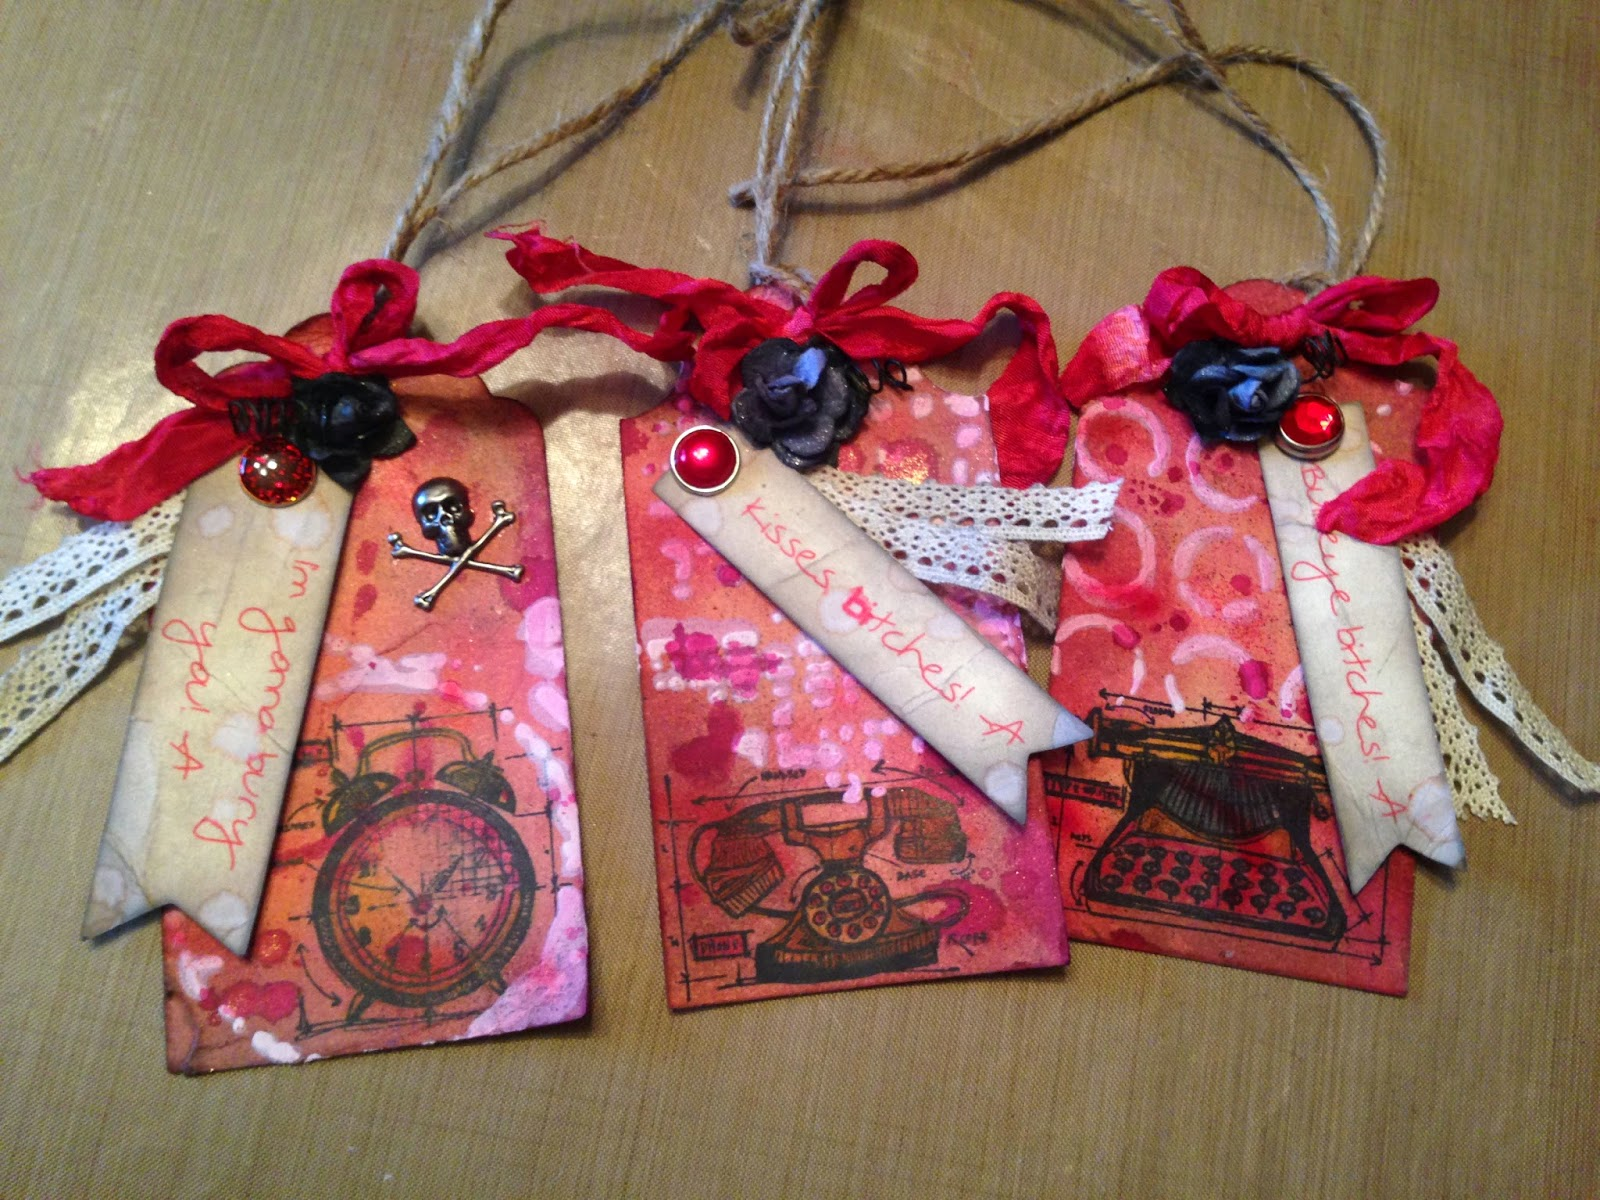 tags, tag, handmade, custom, scrapbooking, Pretty Little Liars, party, celebration, gift, Big A, PLL, vintage, crinkle ribbon, lace, Tim Holtz, twine, flowers, color mists, Color Lab, Marion Smith Designs, distress ink, stamping, banner, pennant, brads, gesso